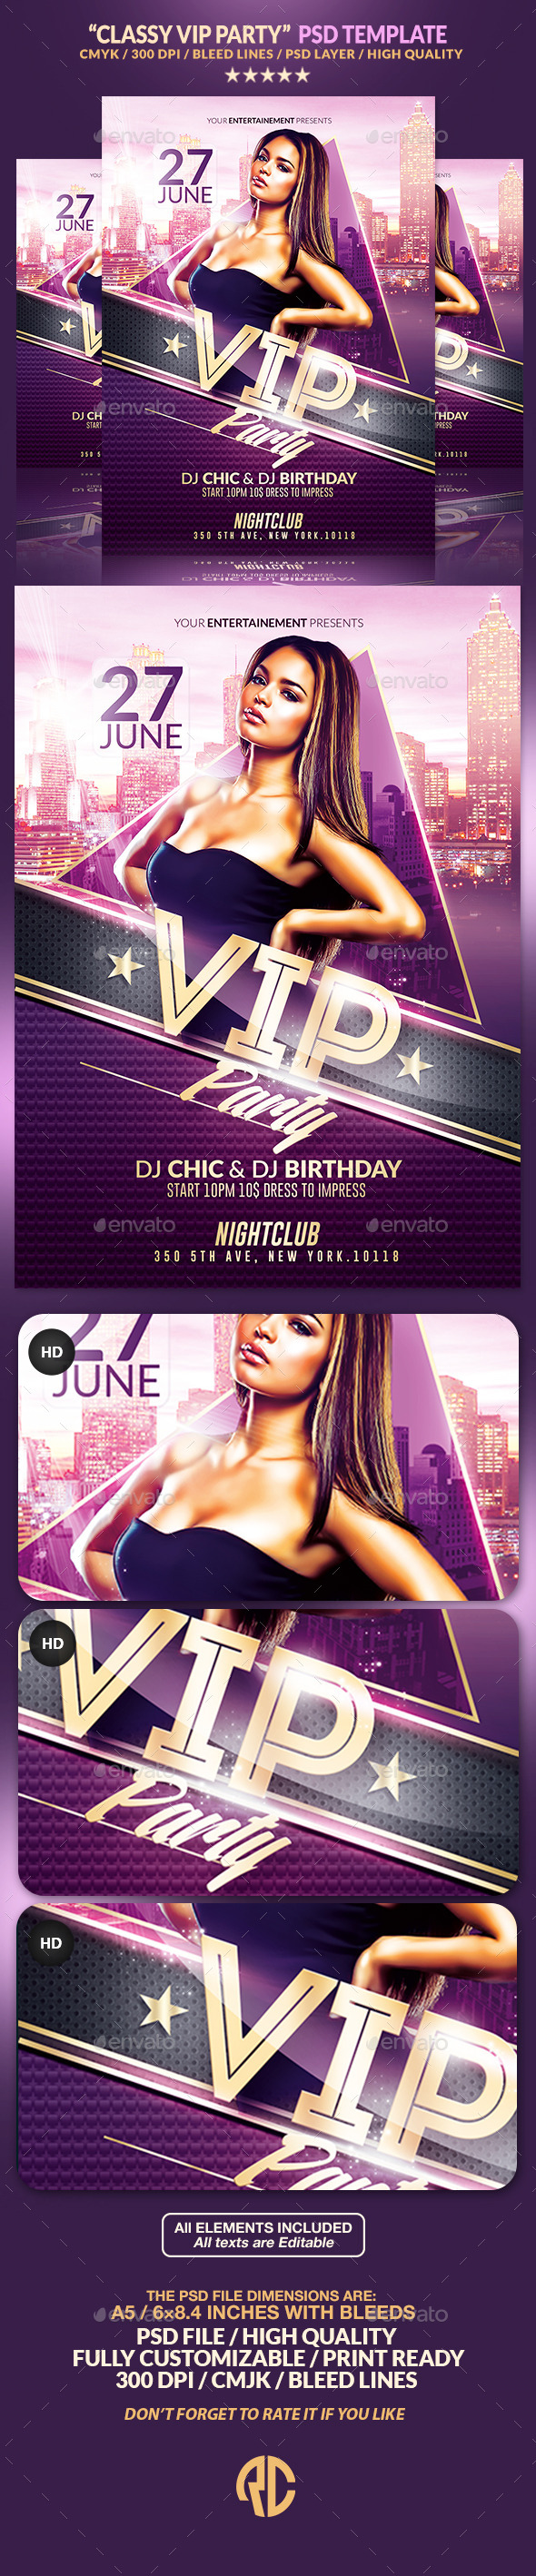 Classy Vip Party | Psd Flyer Template - Clubs & Parties Events